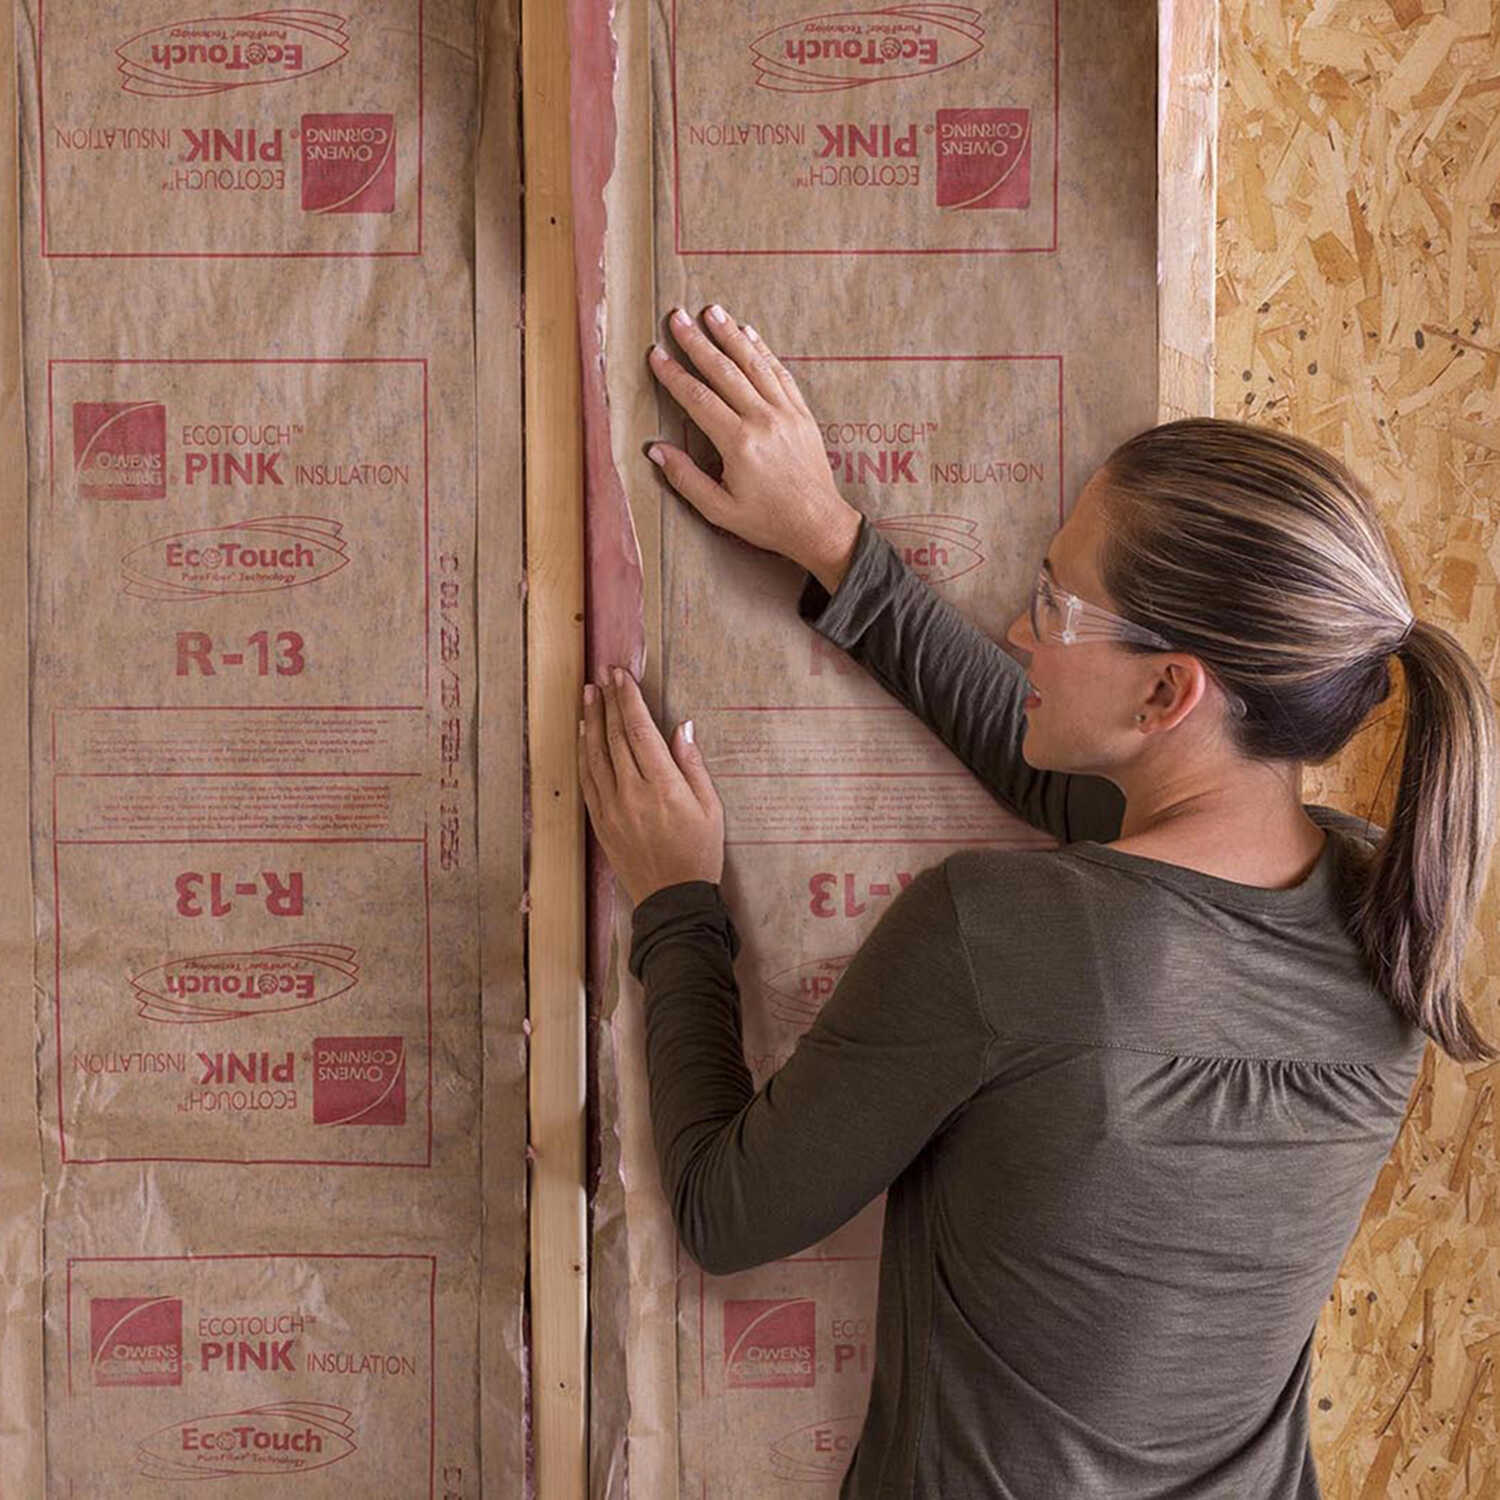 Owens Corning  Eco Touch  15 in. W x 32 ft. L R-13  Kraft Faced  Fiberglass  Insulation  Roll  40 sq